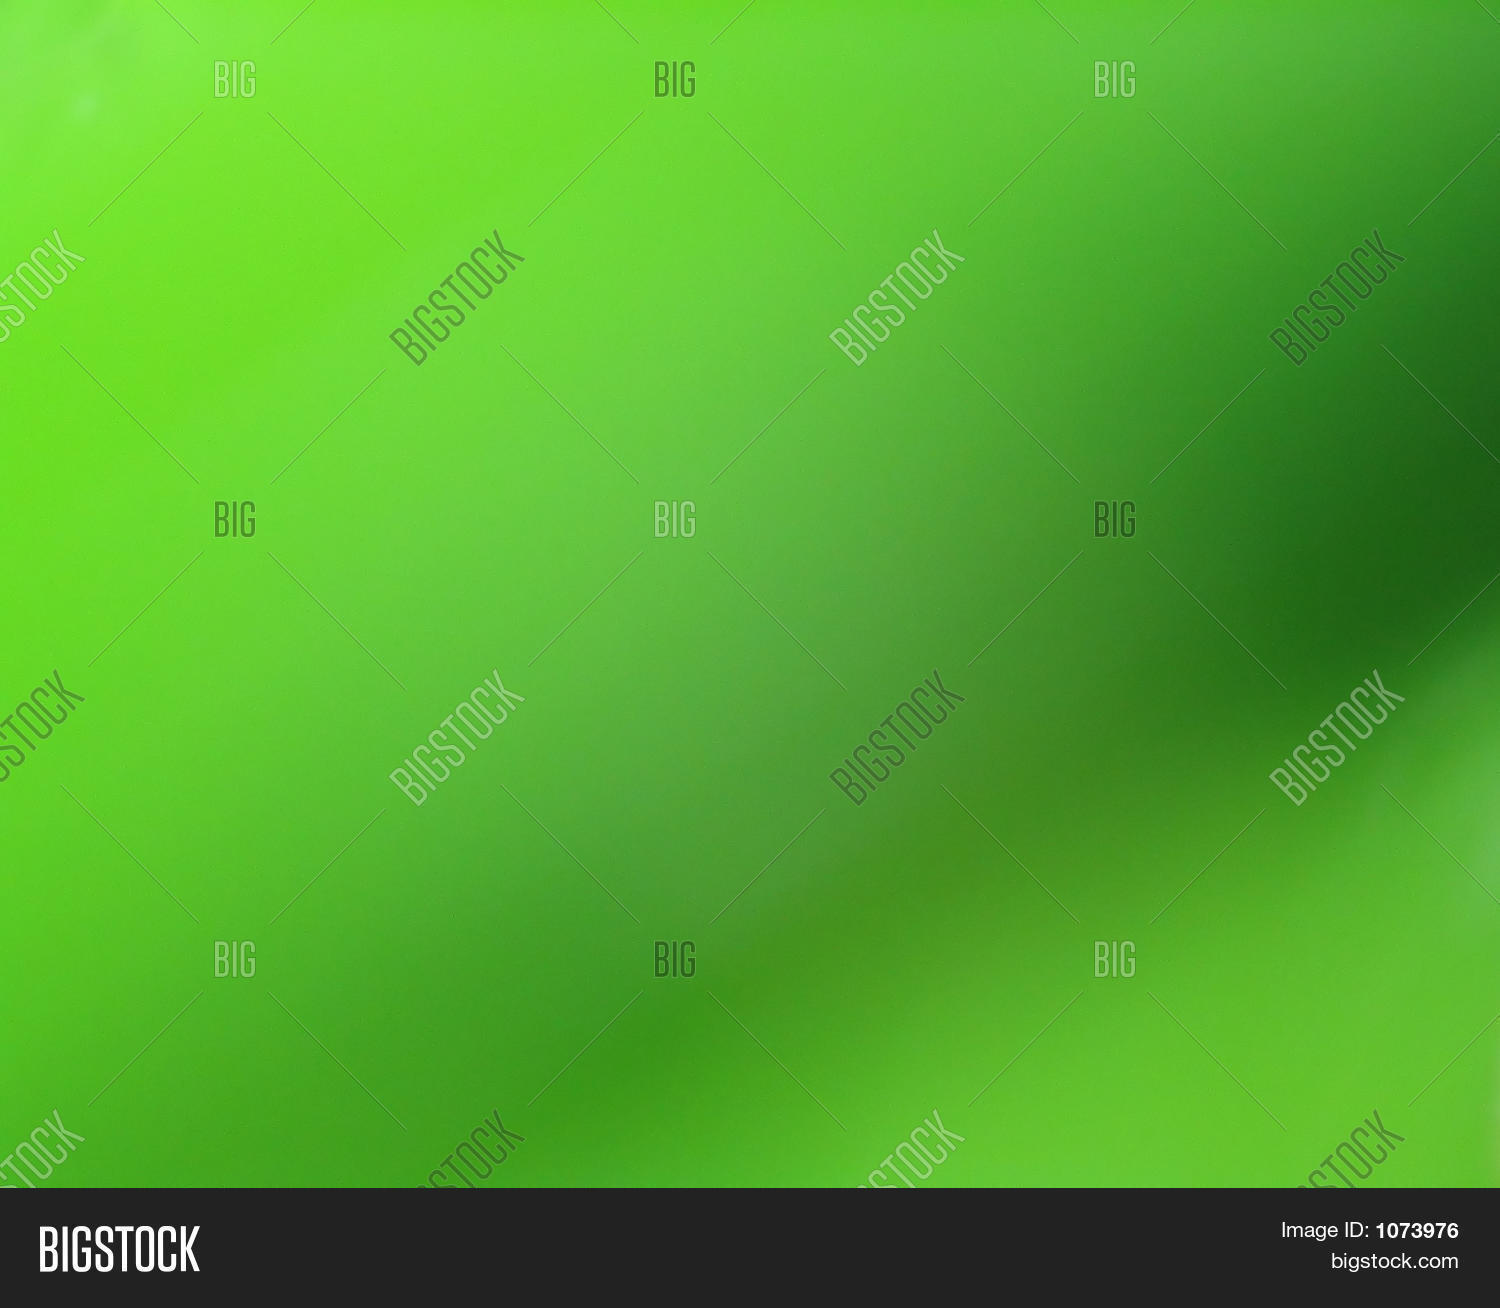 green calming background stock photo amp stock images bigstock